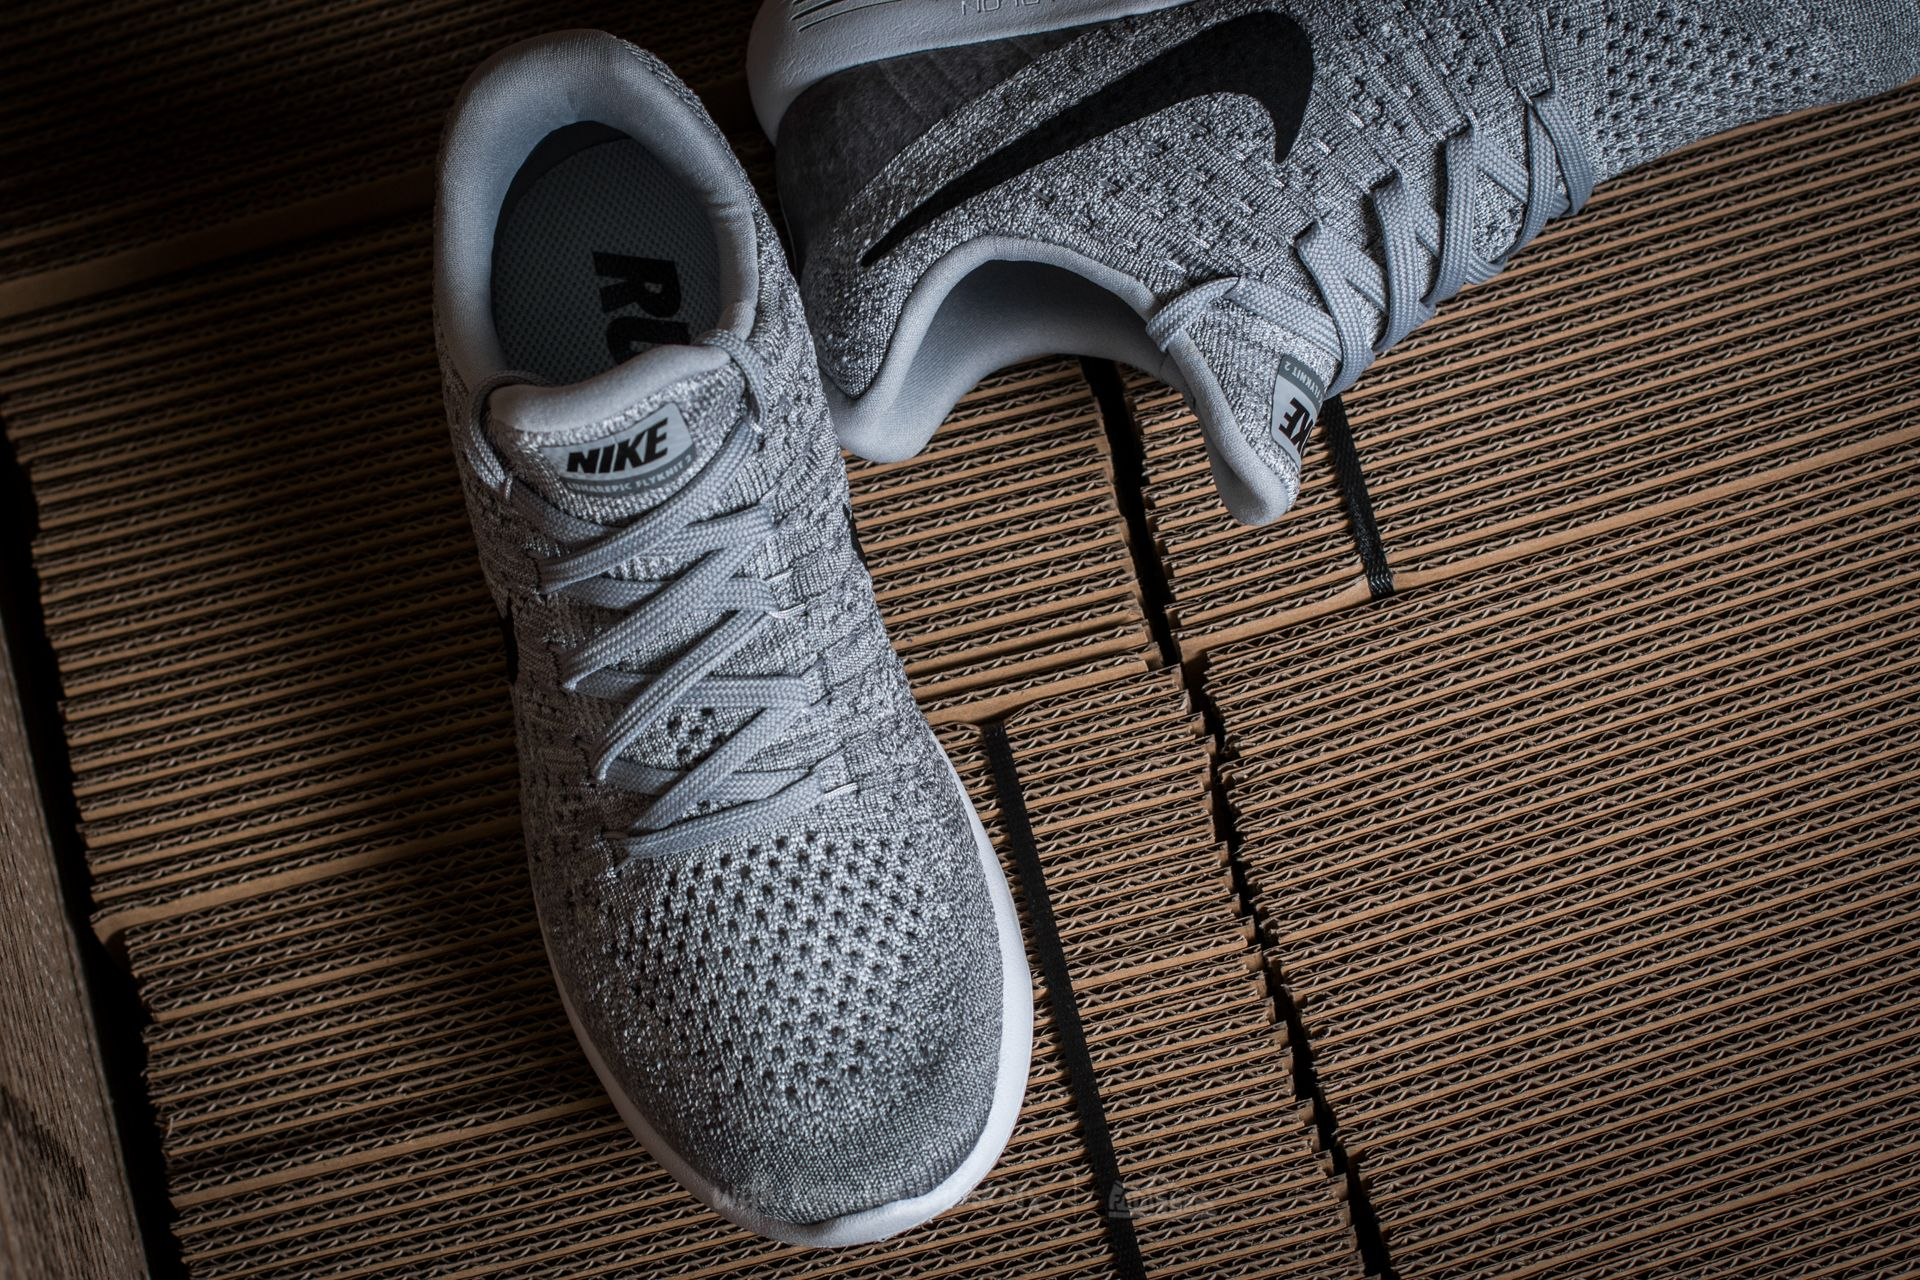 808c49d0dec9 ... where can i buy nike w lunarepic low flyknit 2 wolf grey black cool  grey at